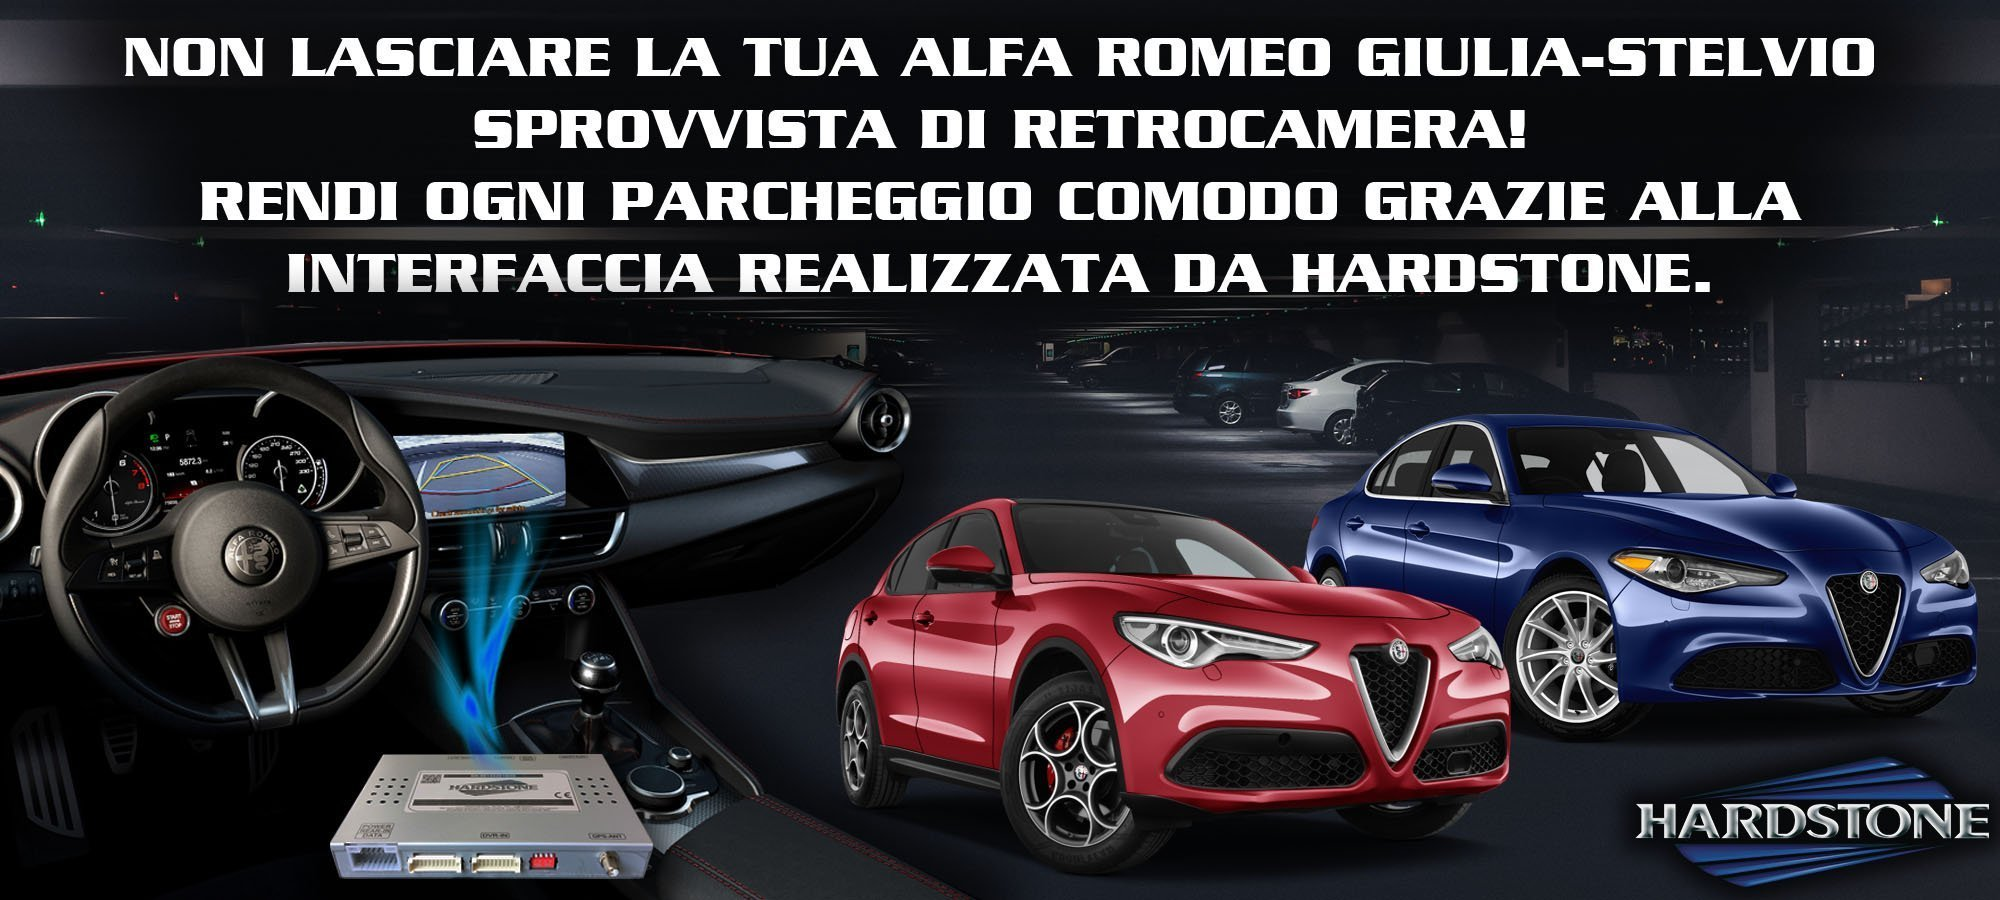 interfaccia giulia stelvio